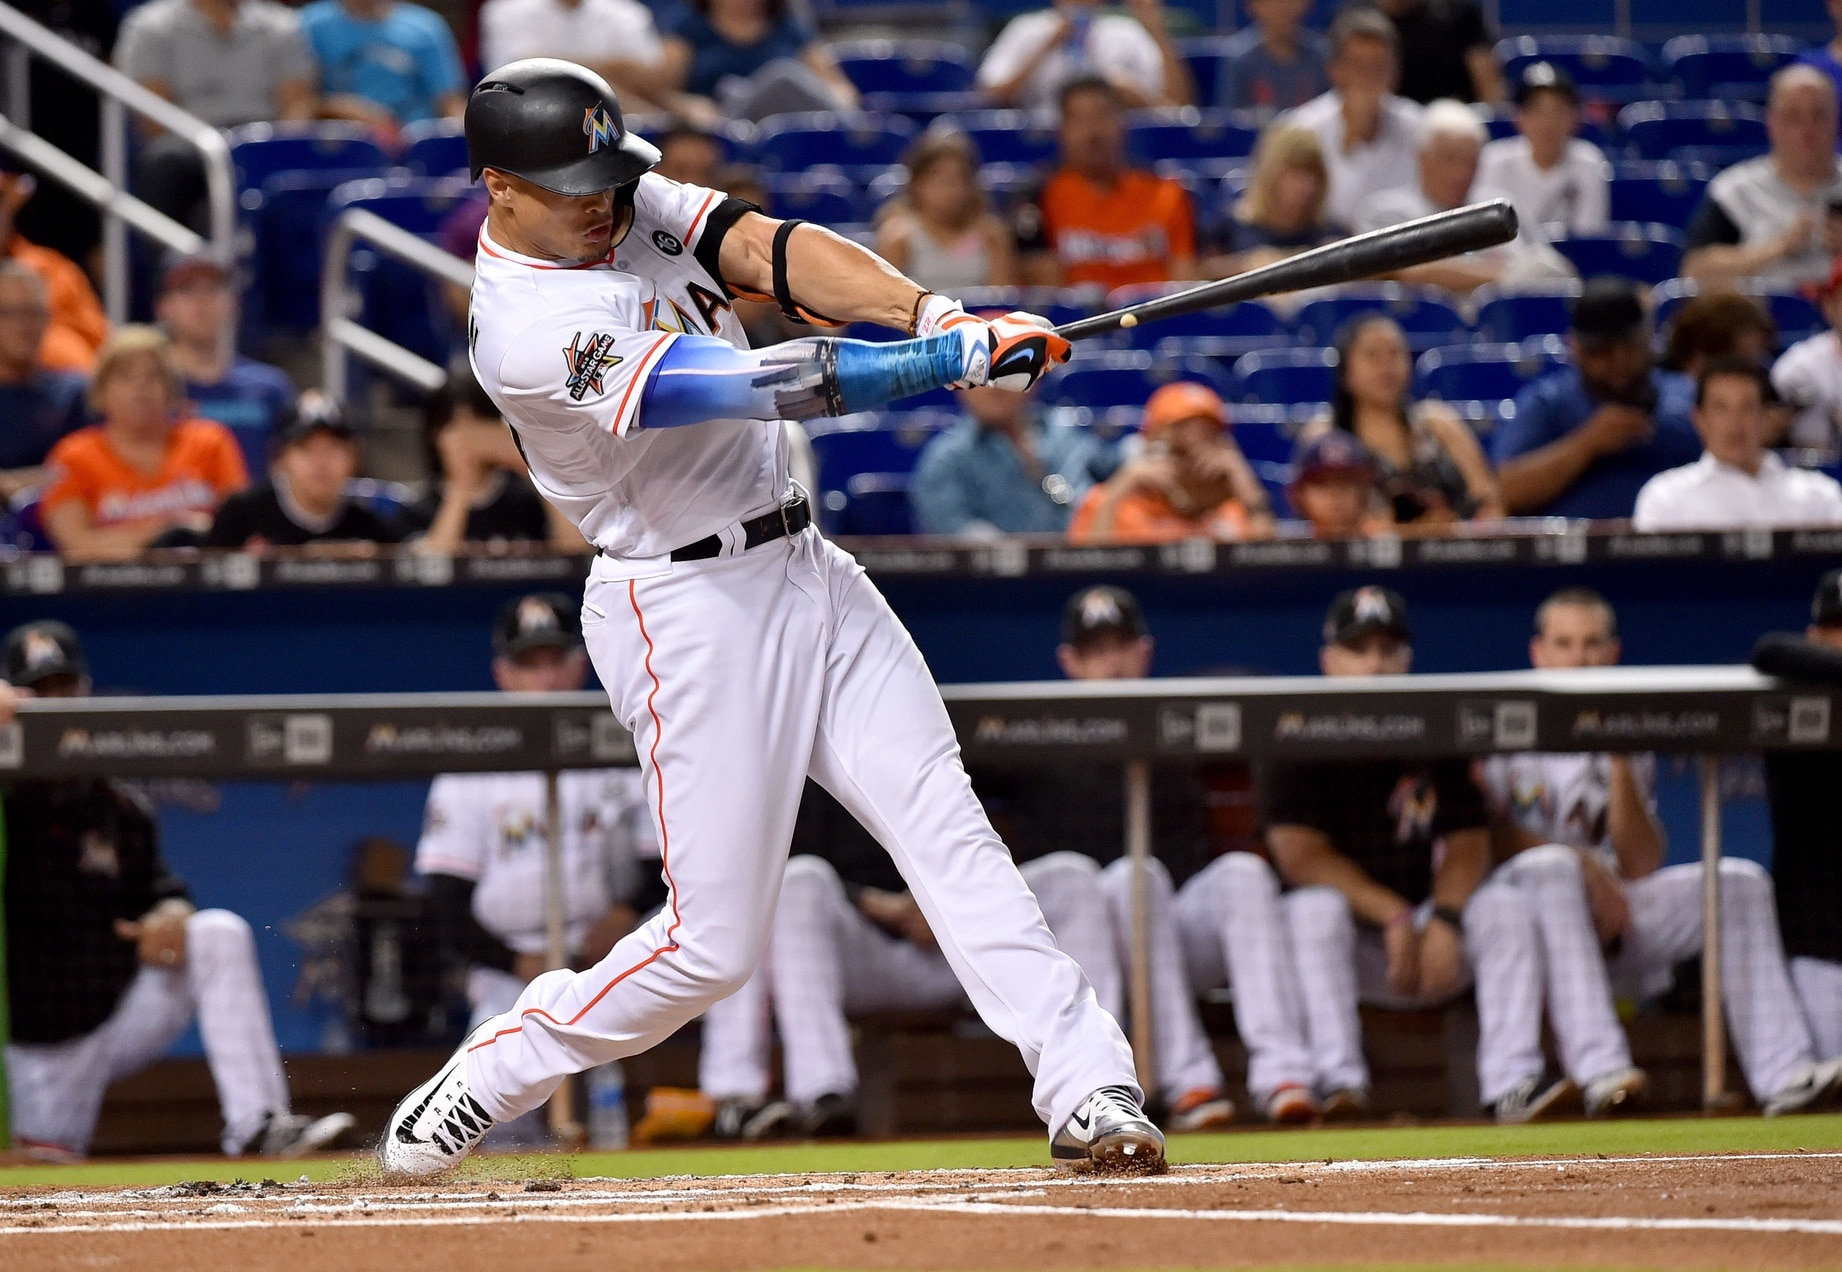 Check out this homer from Giancarlo Stanton.